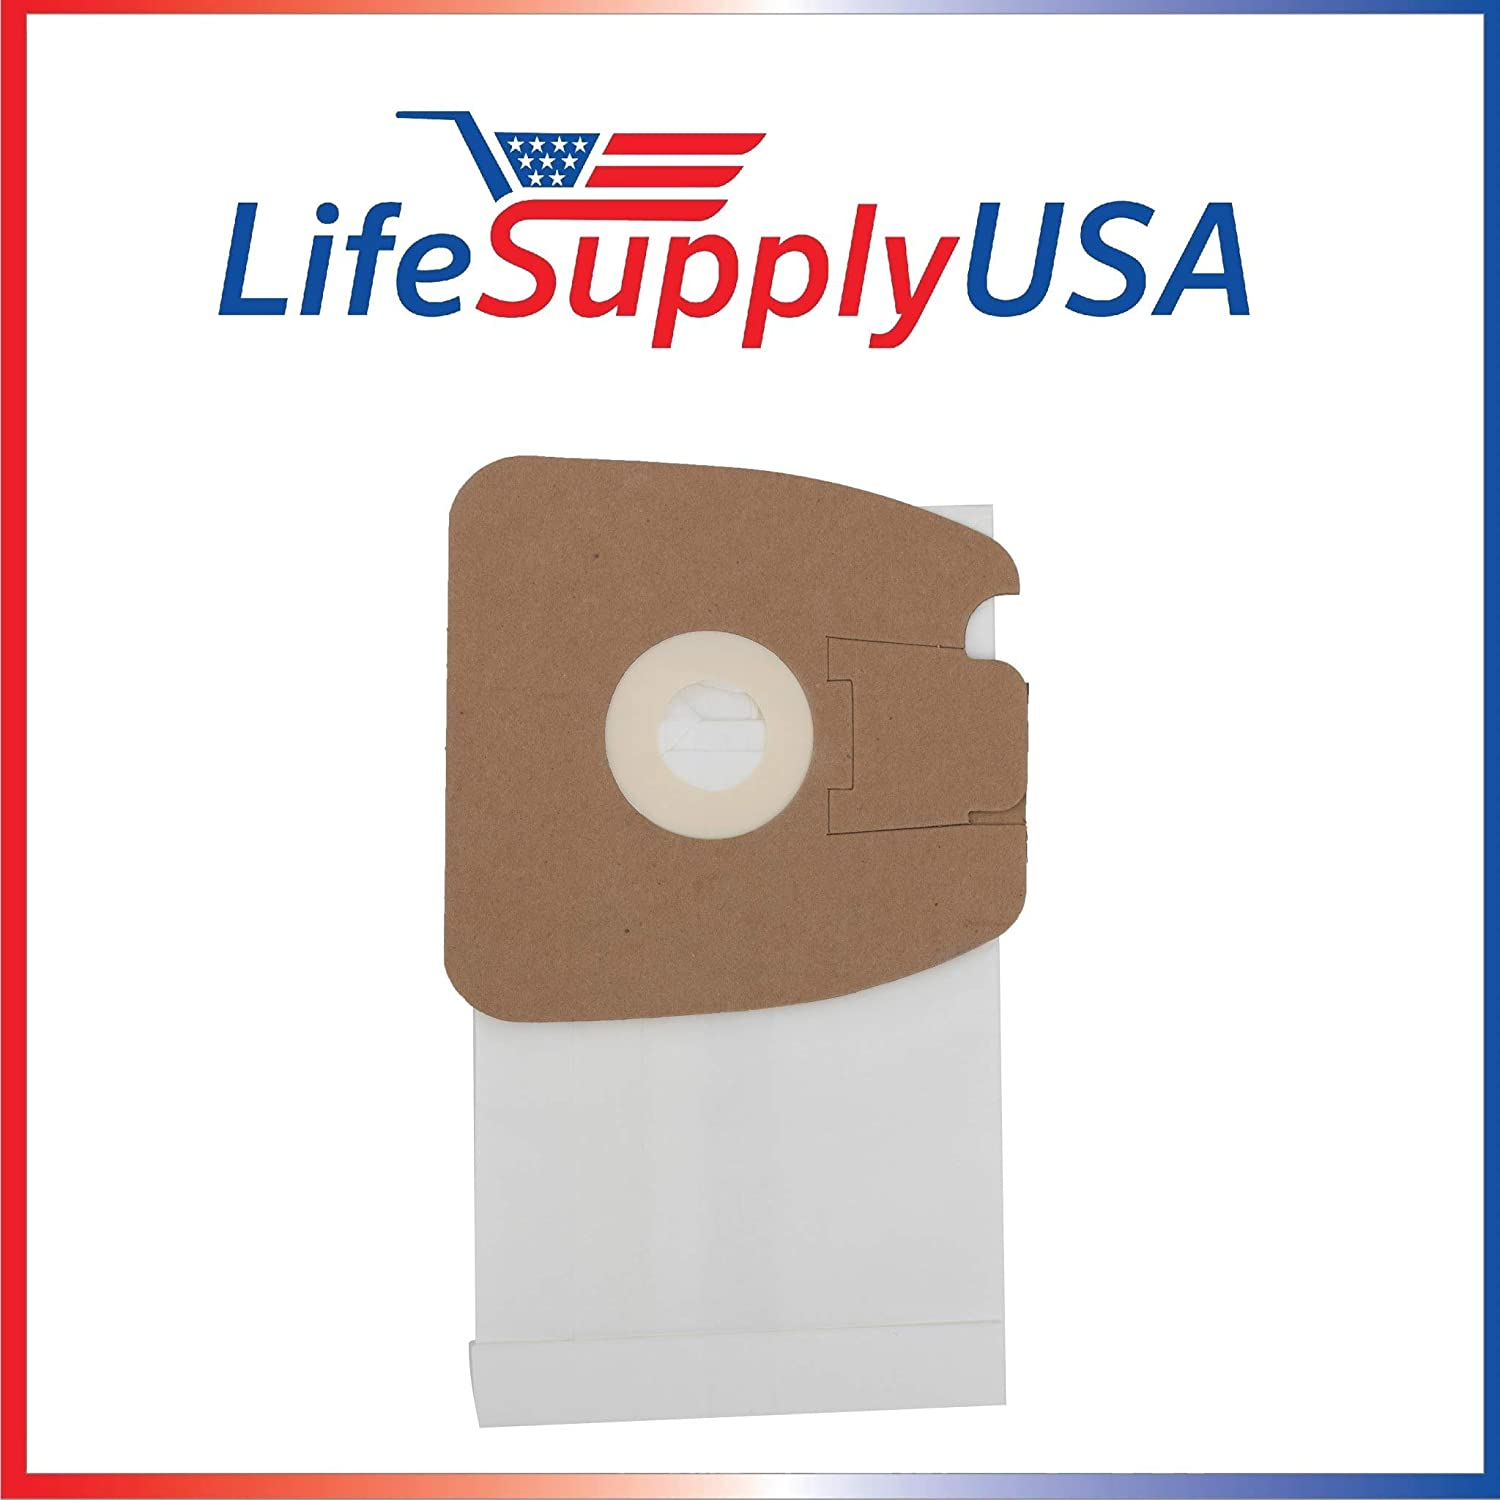 LifeSupplyUSA 2 Packs of 3 (6 pcs) Vacuum Bags Compatible with Eureka MM, Mighty Mite SC3683 3681B-1 S3681